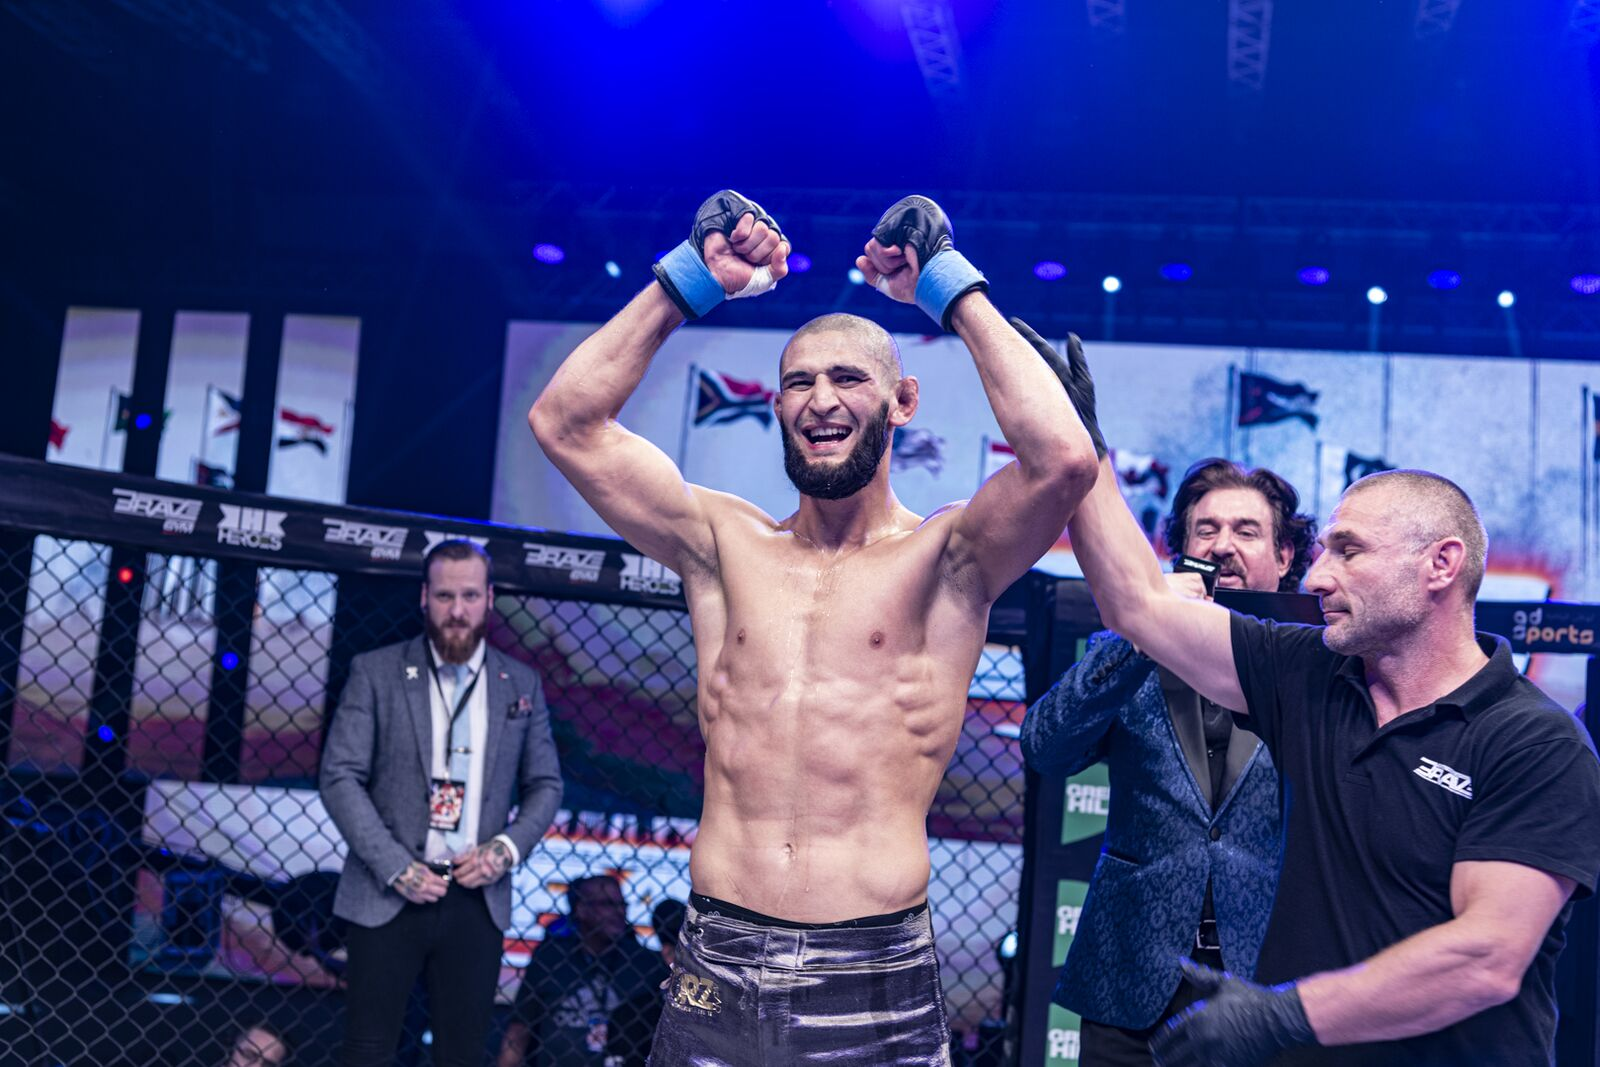 Ahead of BRAVE CF Title Shot, Chimaev Named Breakthrough Fighter of the Year in Sweden -